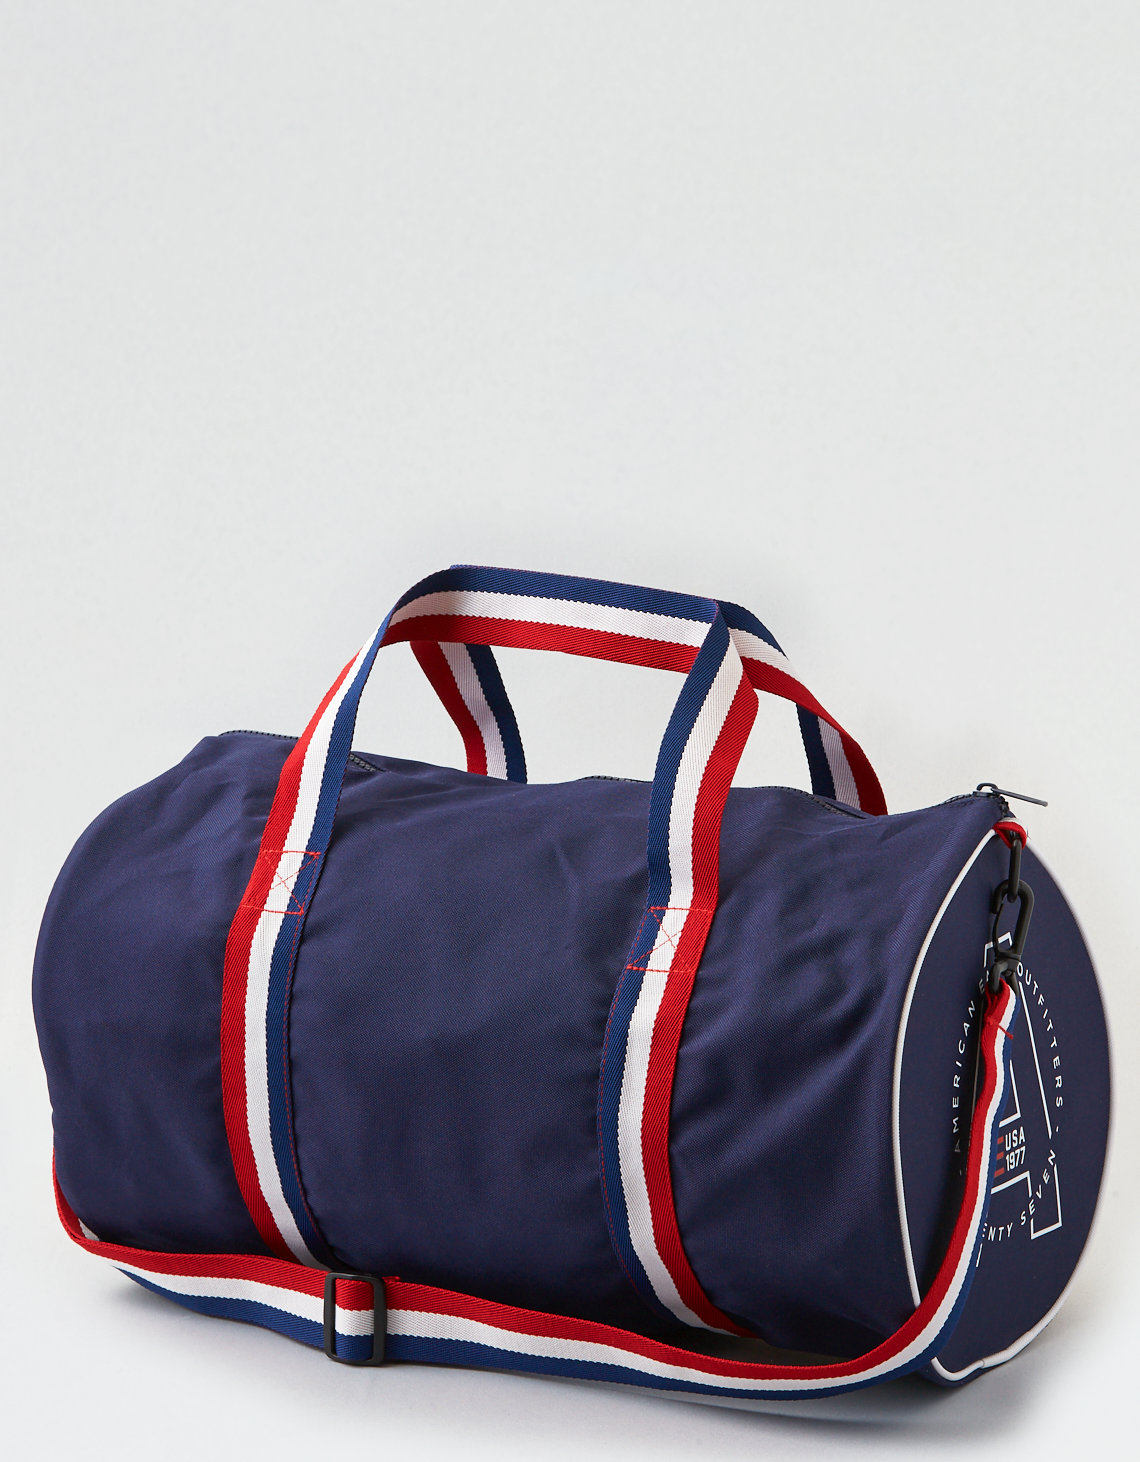 1d4a1253fac AEO Mini Duffle Bag, Navy   American Eagle Outfitters